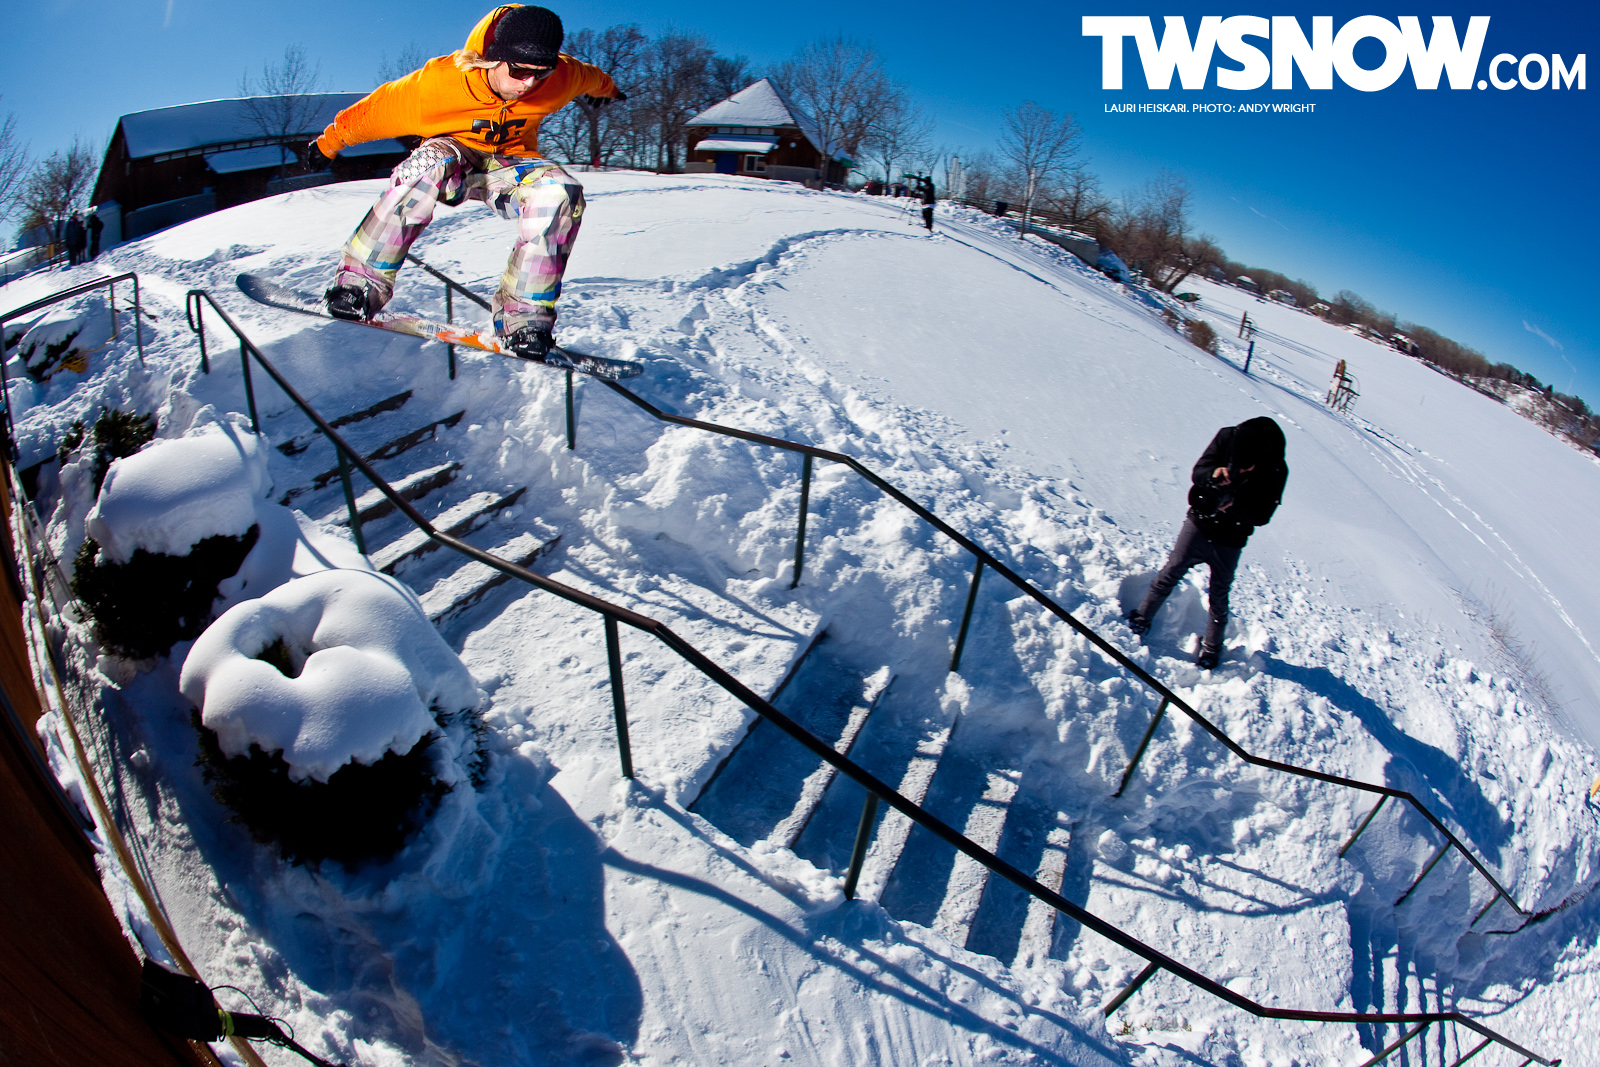 Wallpaper Wednesday TransWorld SNOWboarding Magazine 1600x1067